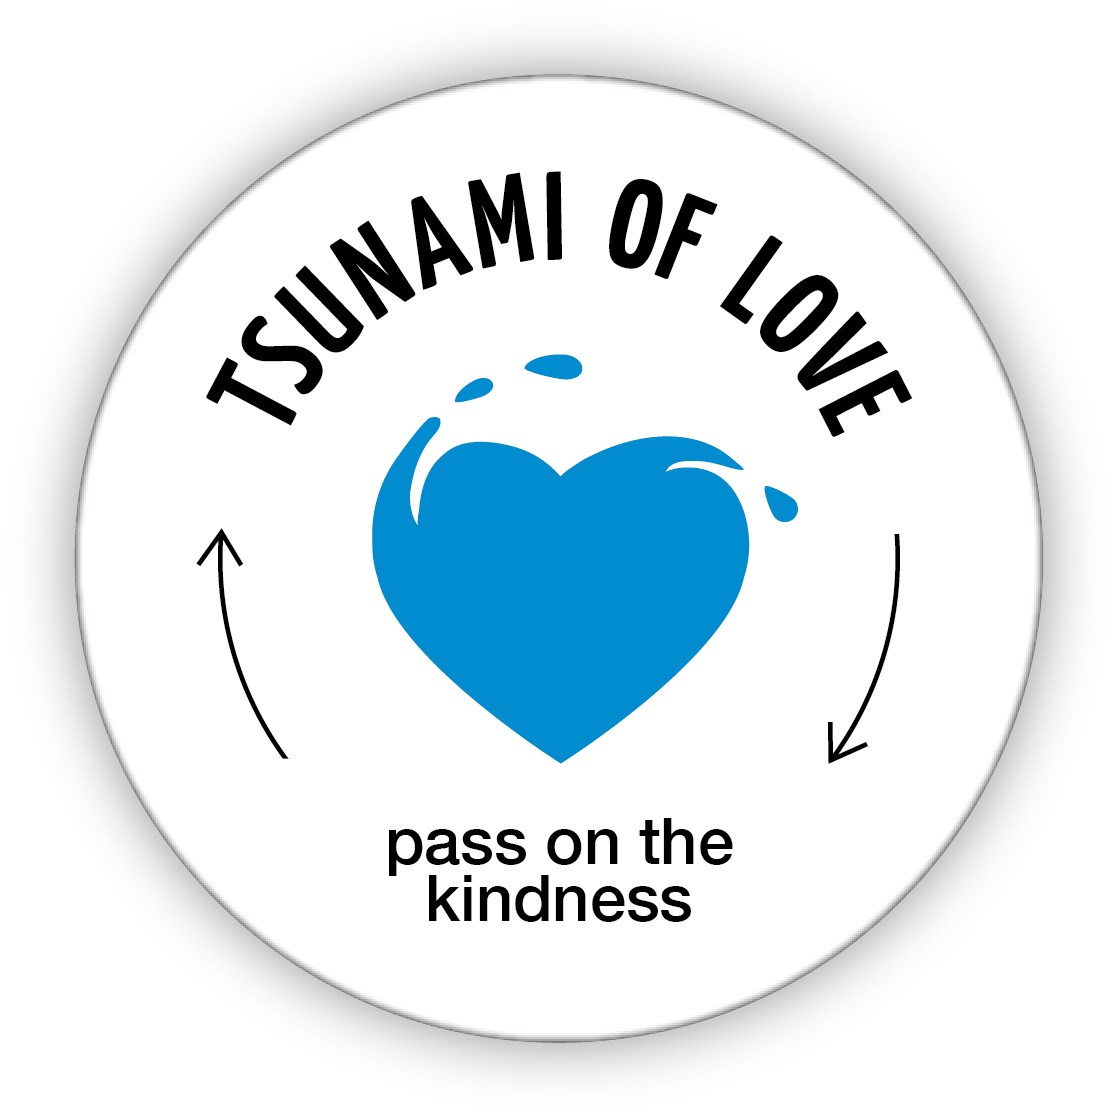 Tsunami of Love – Love your enemies